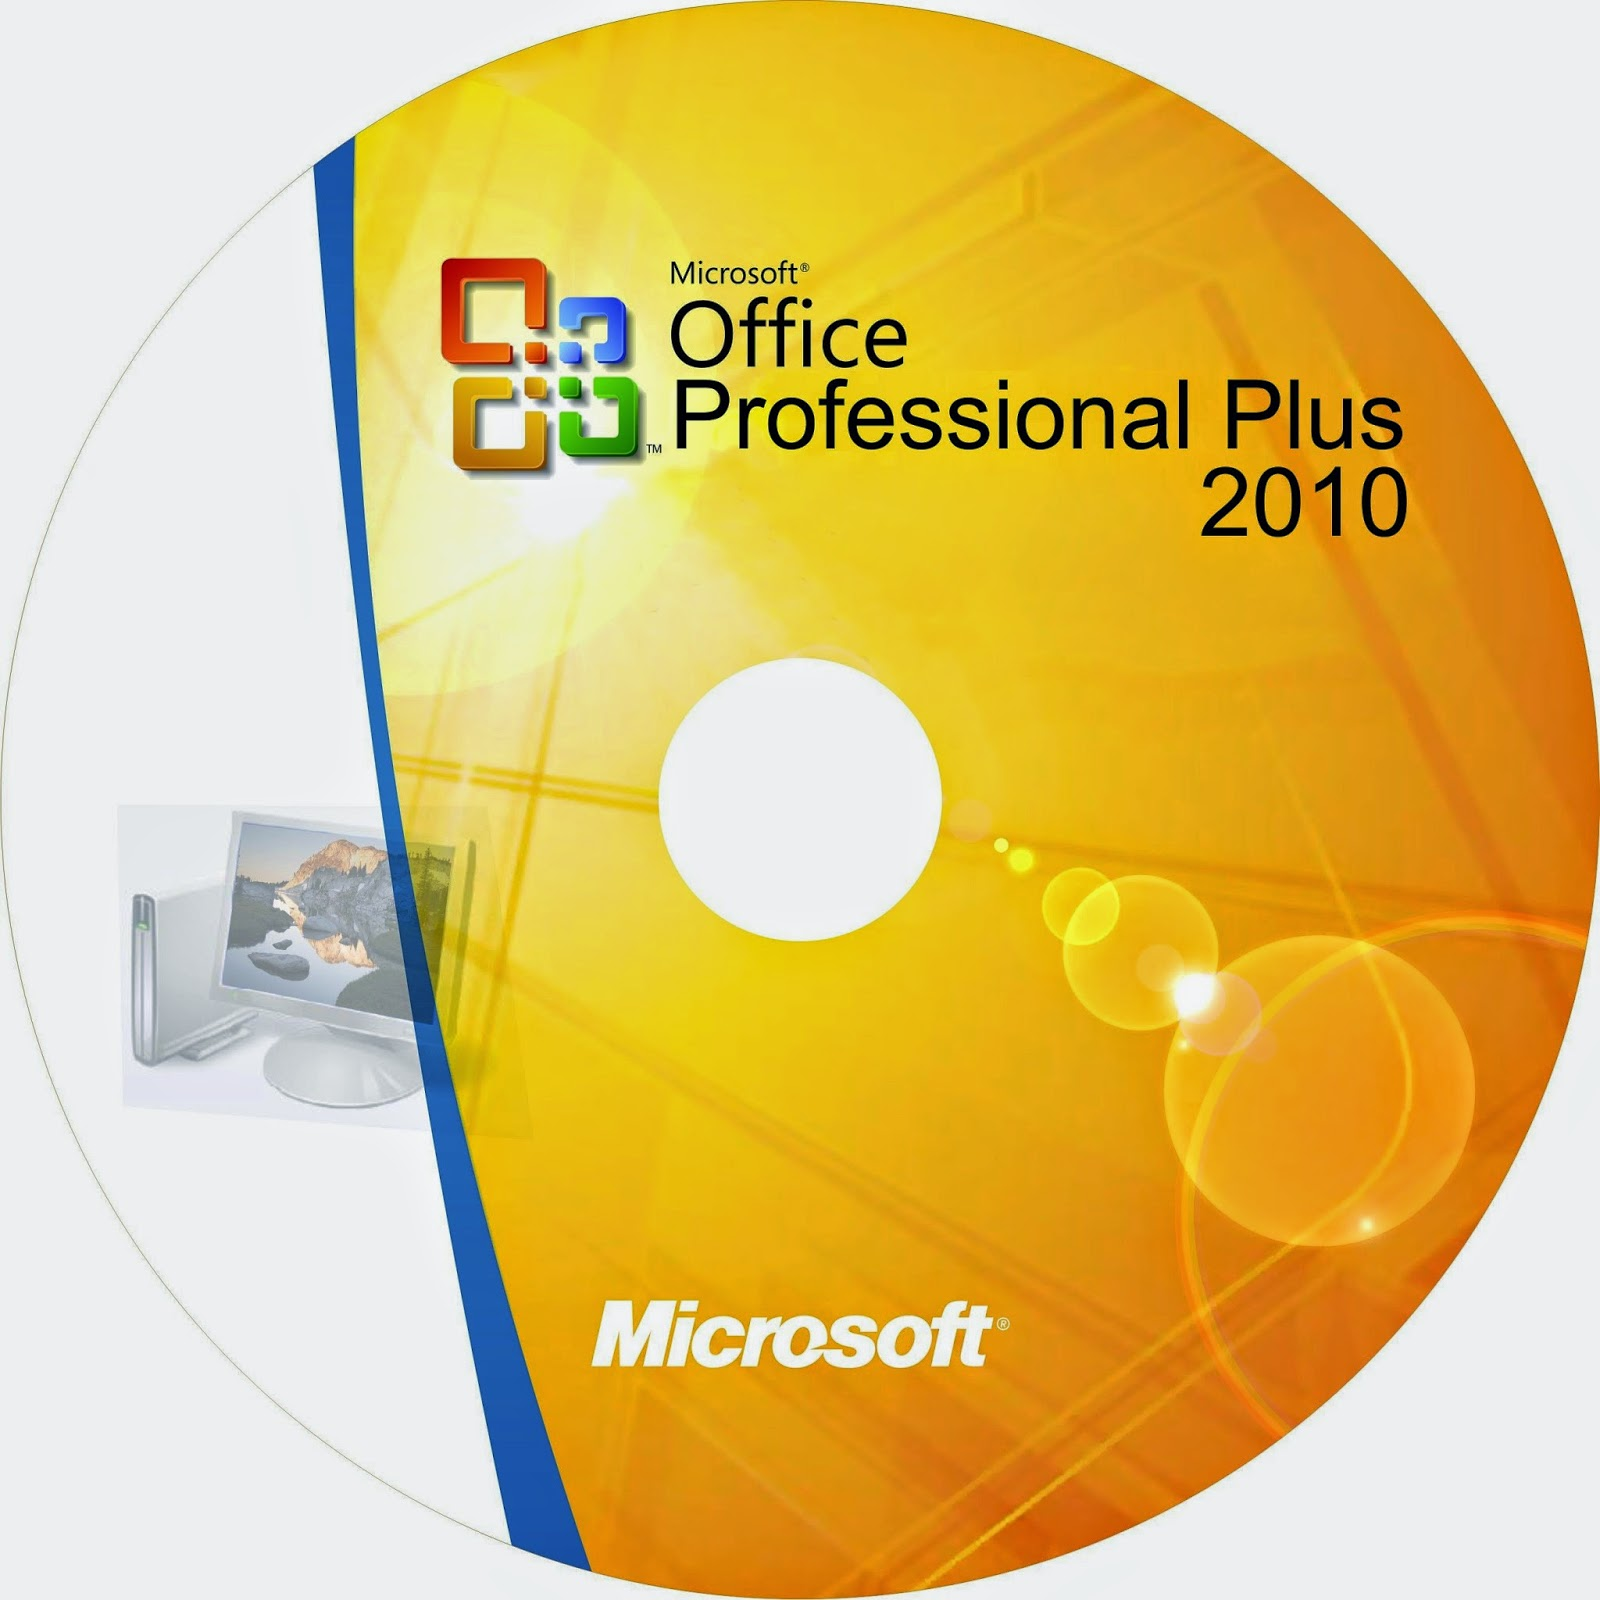 Free download cover designer microsoft office professional plus 2010 - Office professional plus 2010 ...